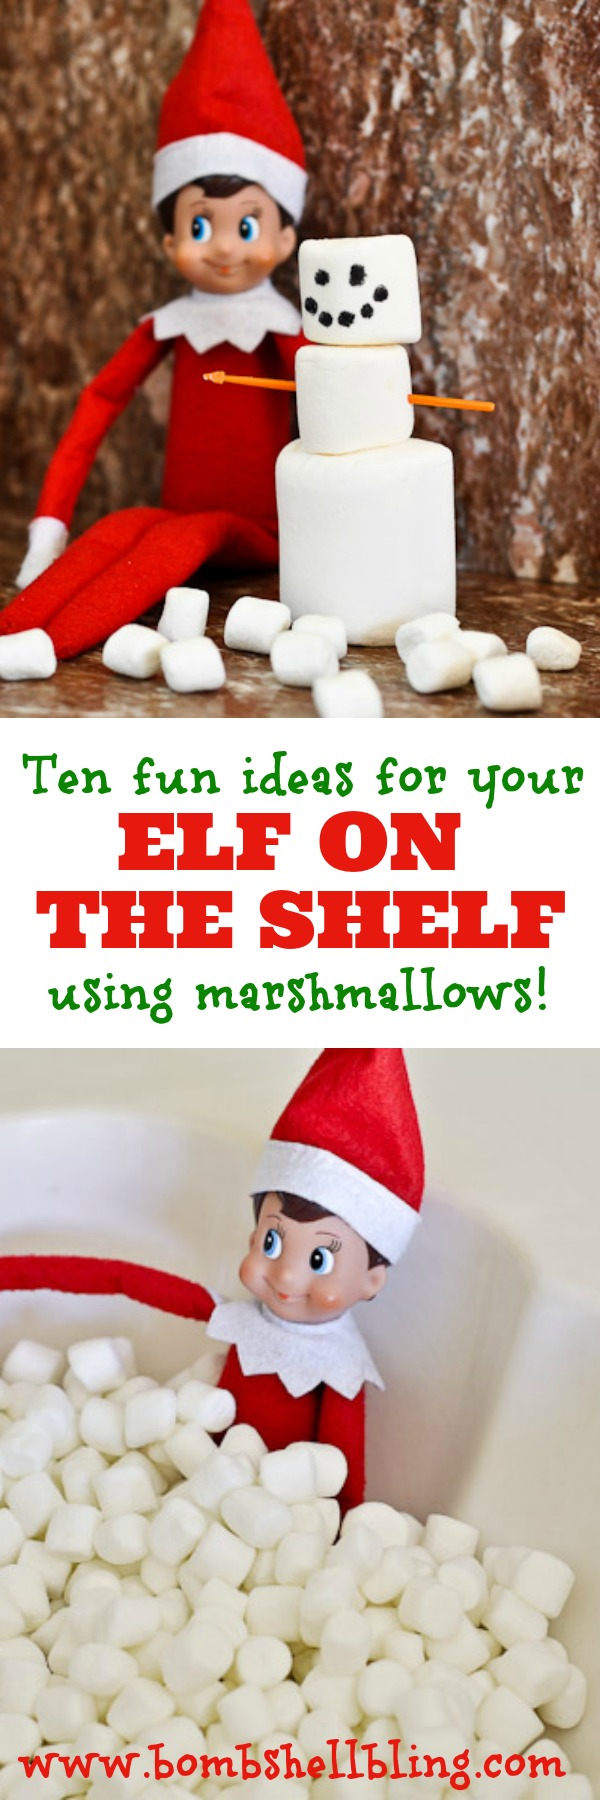 10 simple & fun ideas for your Elf on the Shelf using marshmallows!